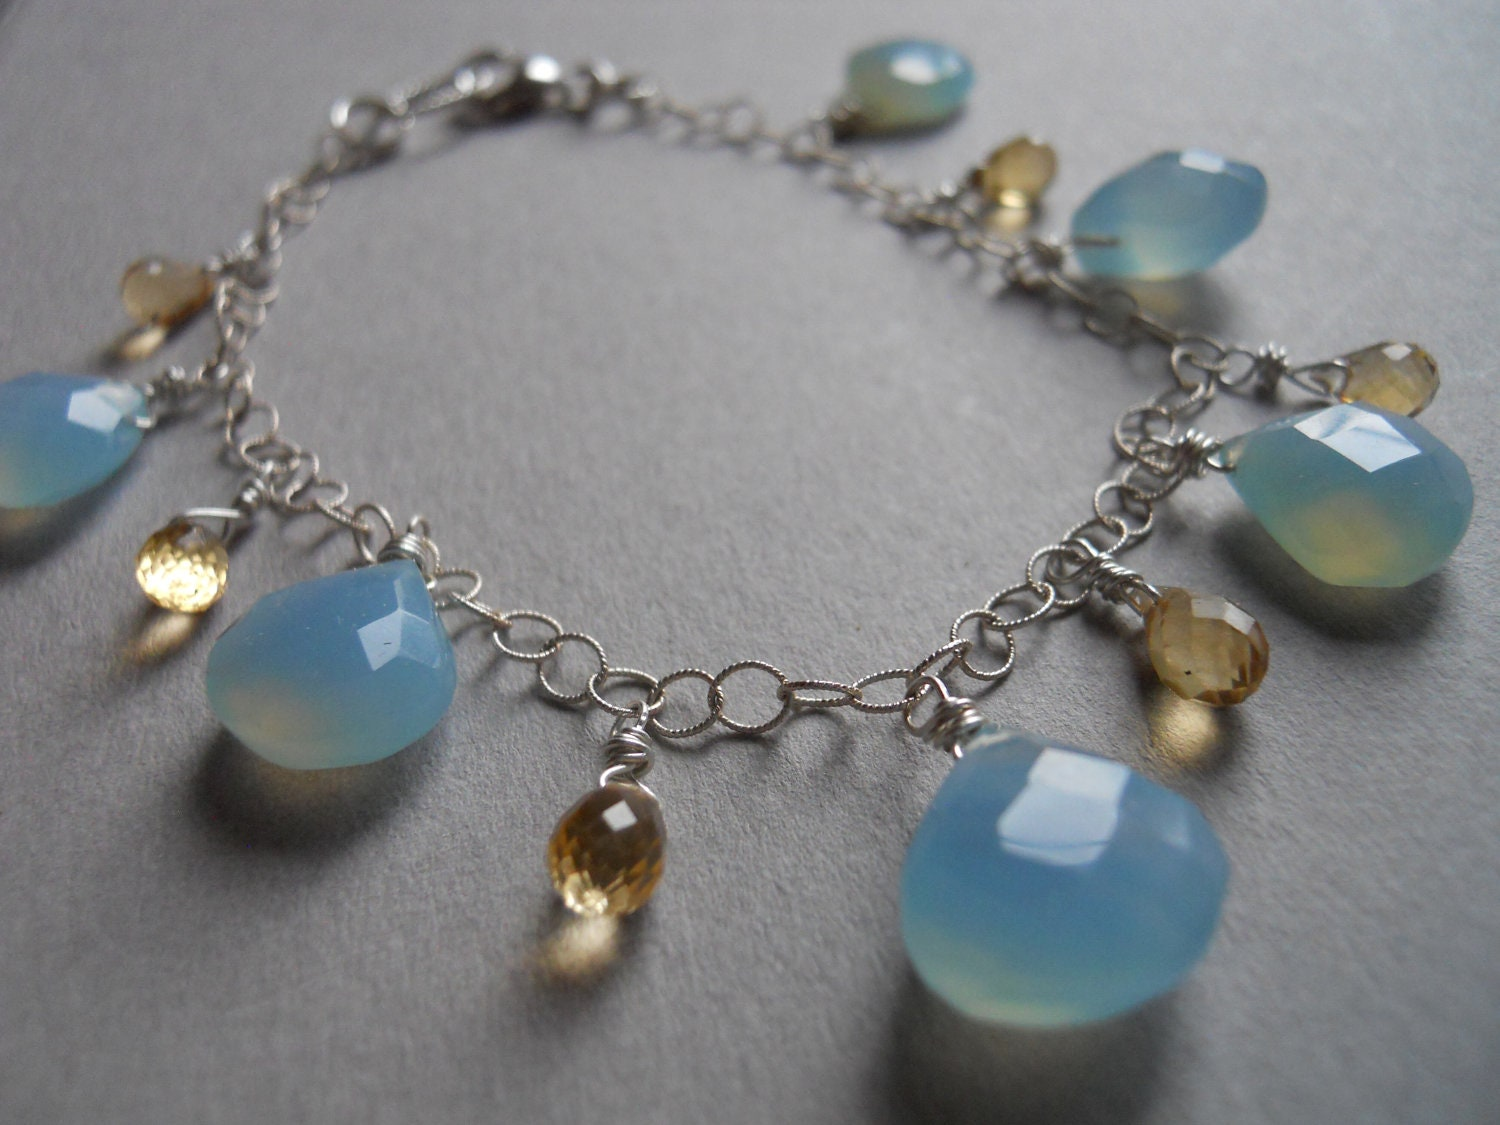 SALE WAS 84 now 70 Like Butter soft golden blue chalcedony and citrine bracelet - $70.00 USD